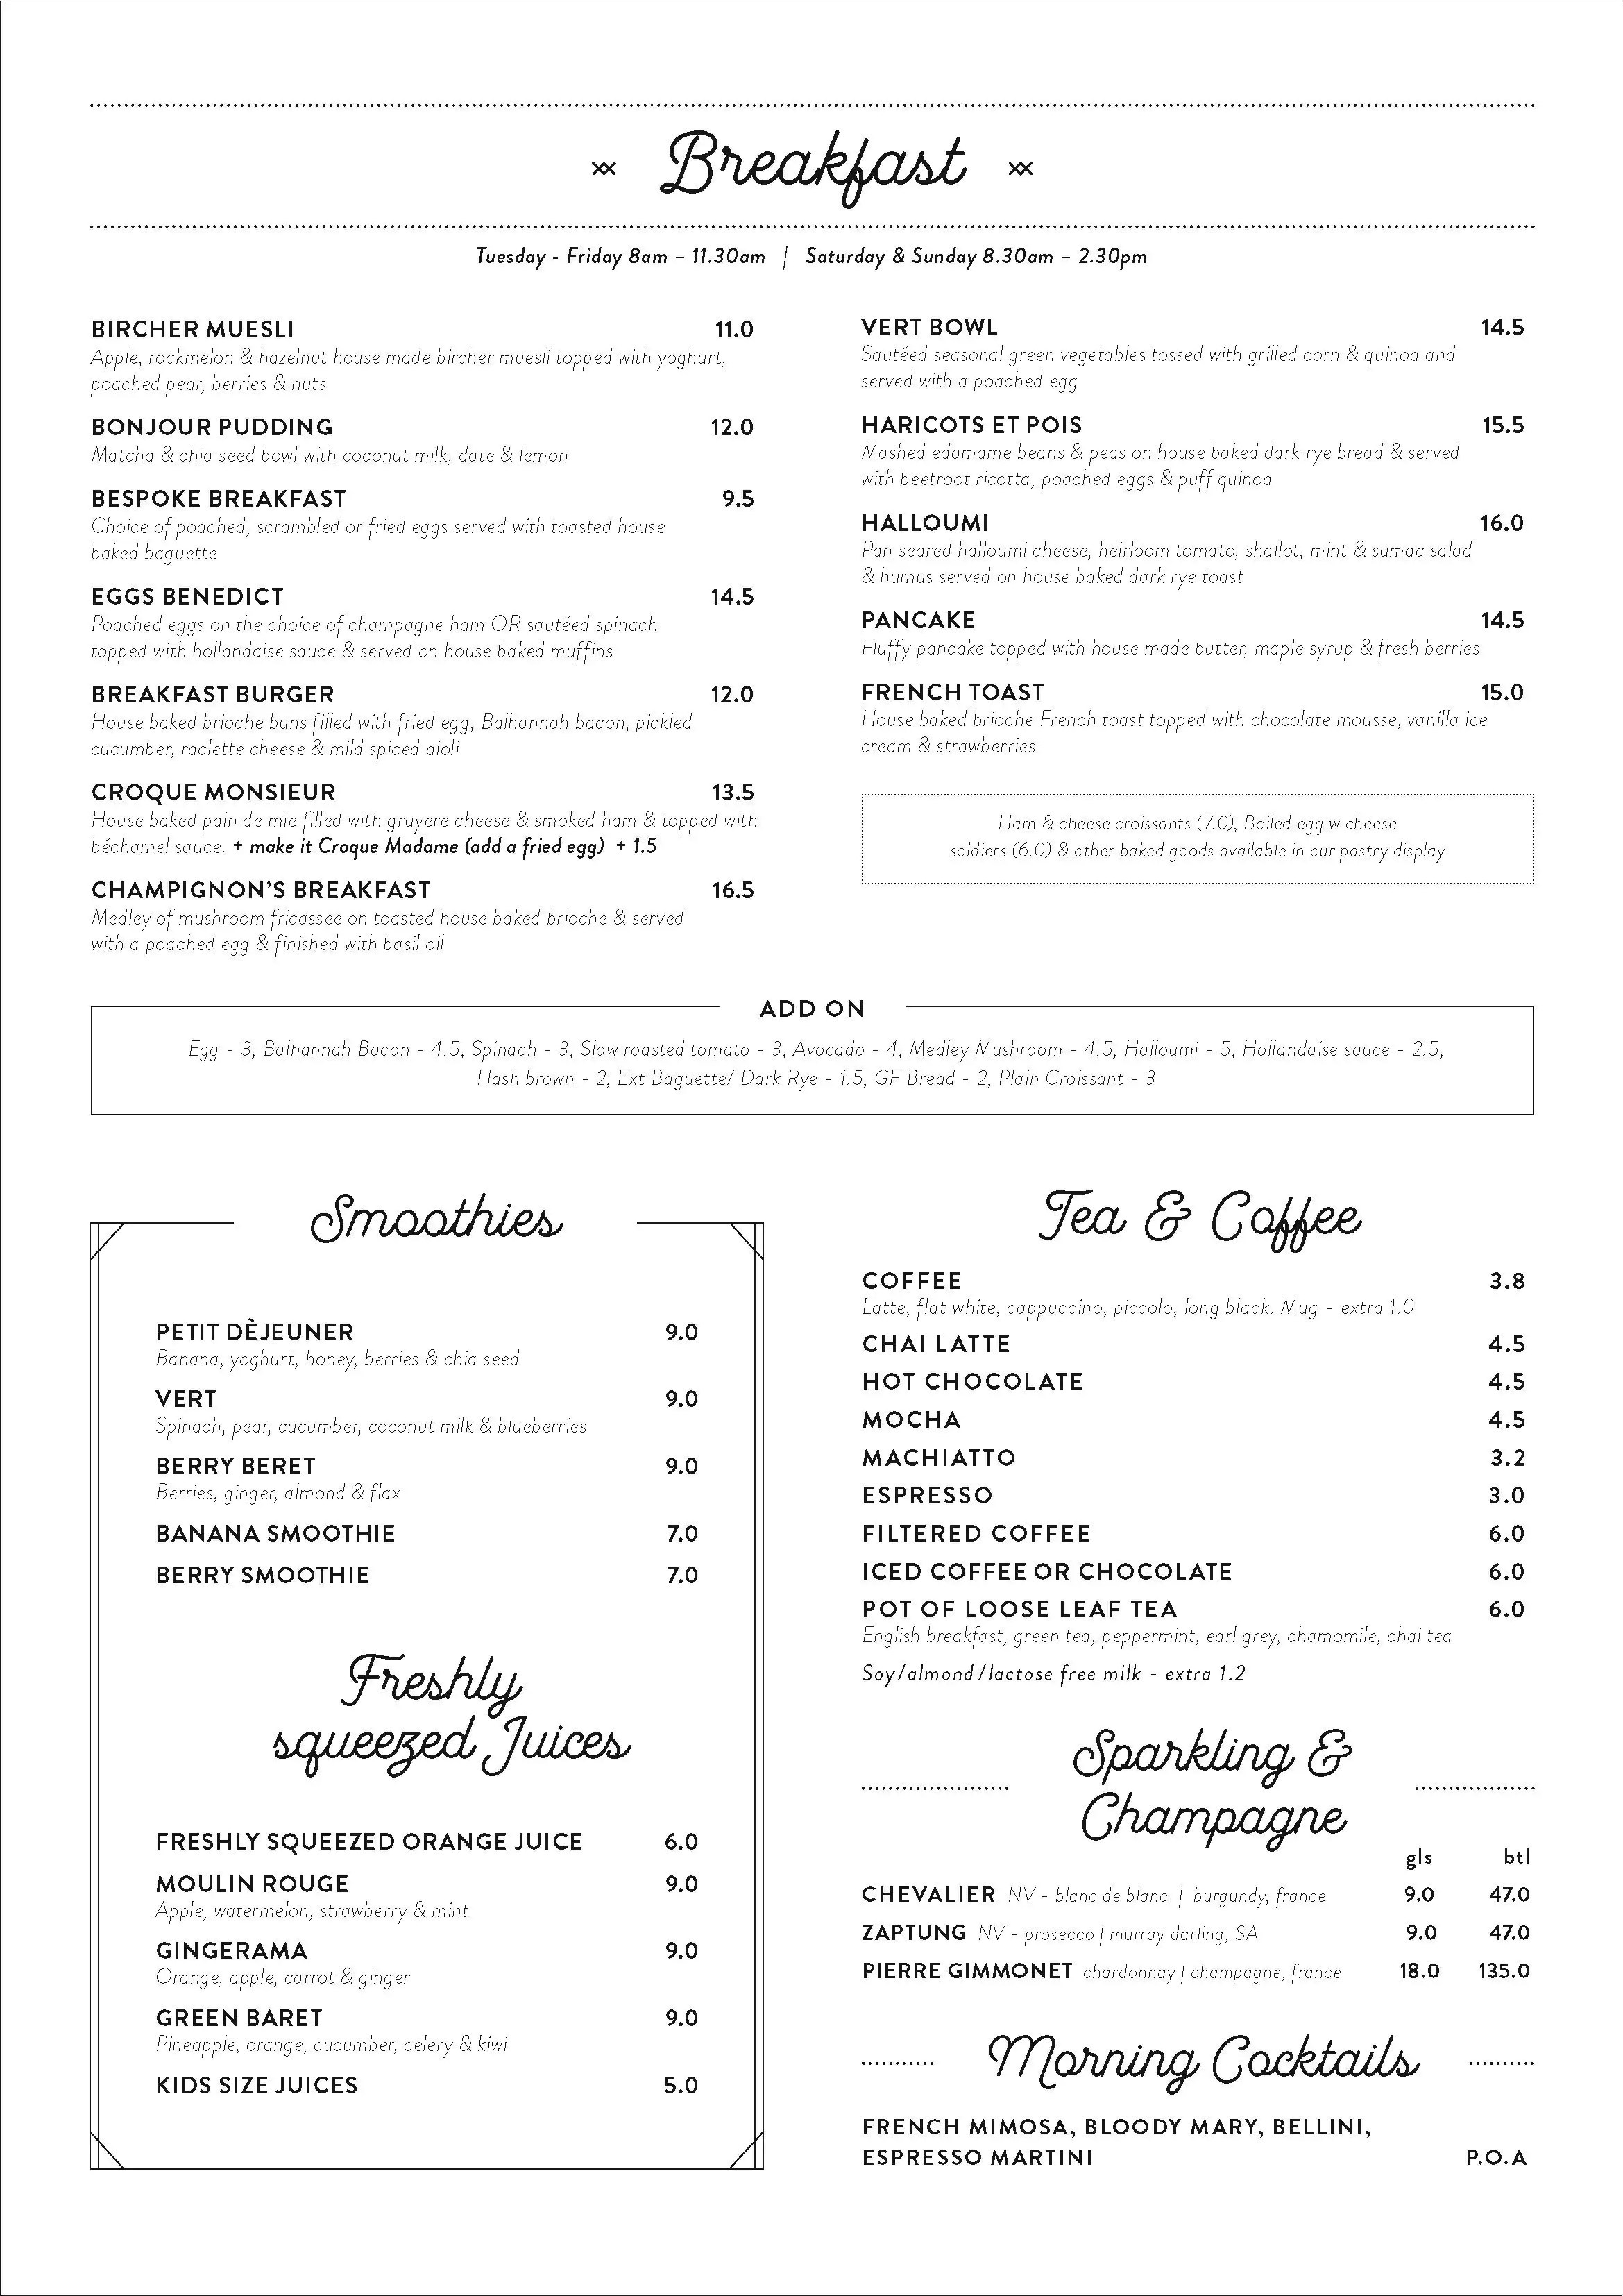 Cucina Restaurant North Adelaide Menu Cliche Menu Menu For Cliche North Adelaide Adelaide